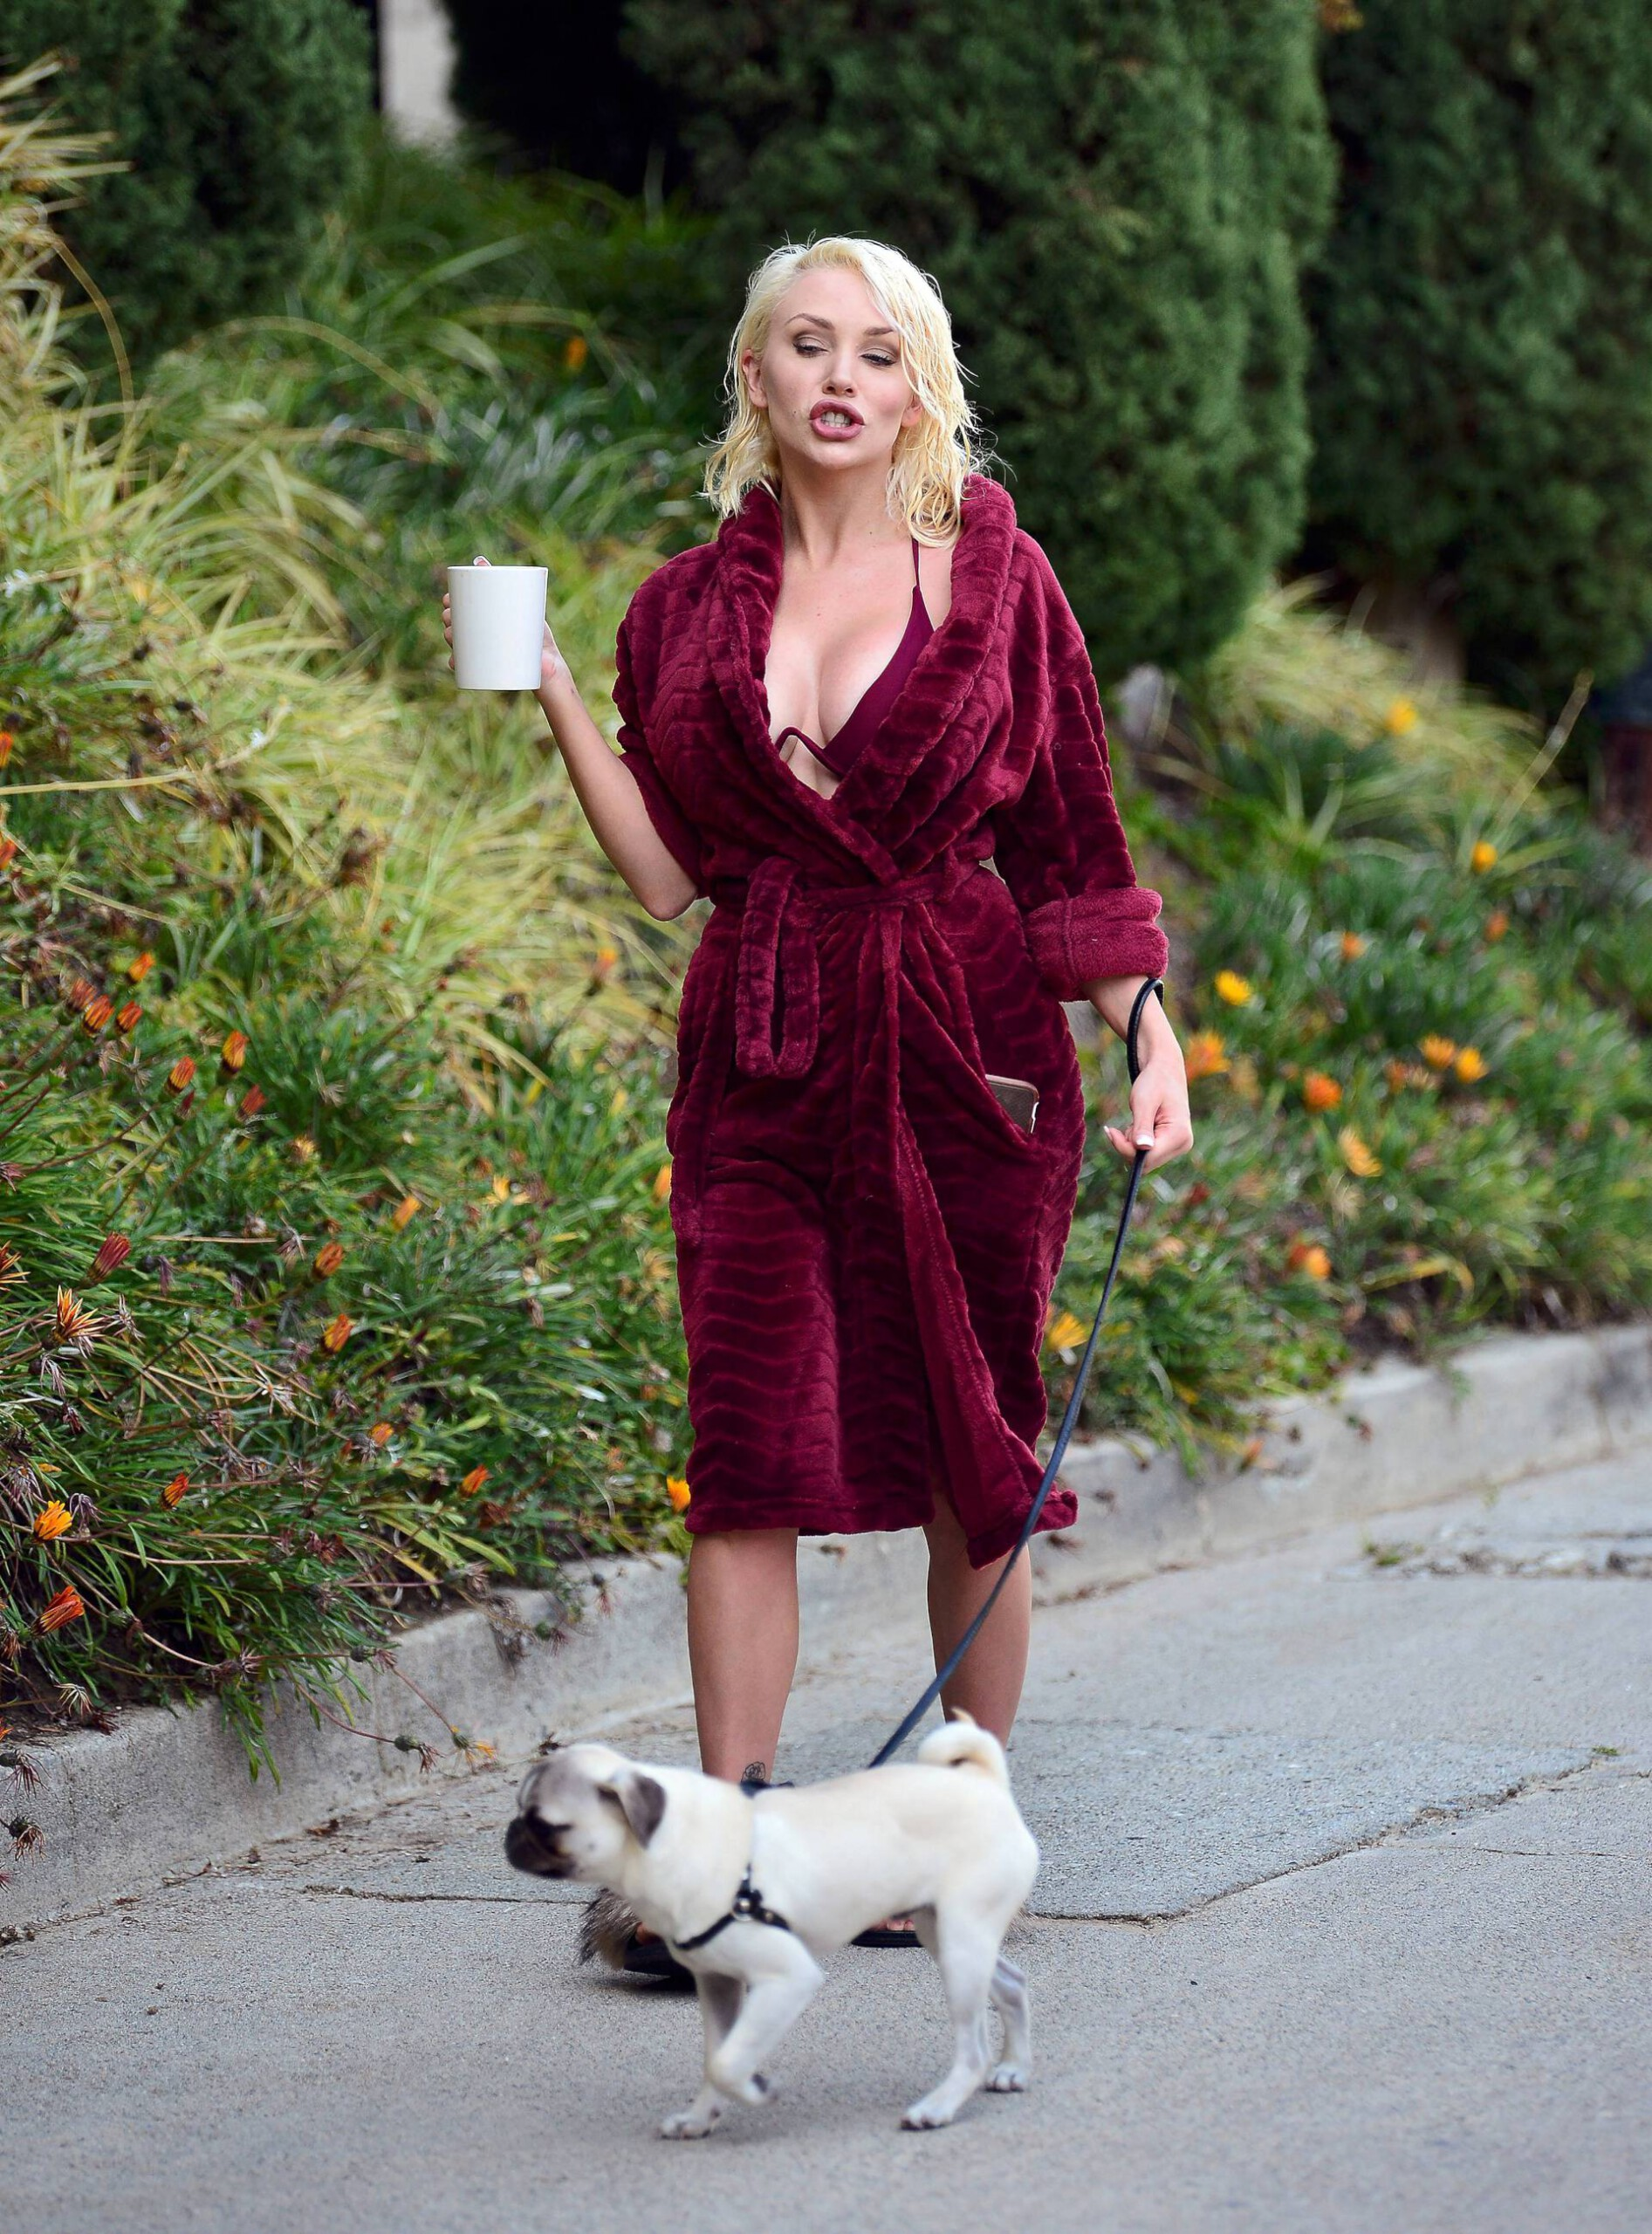 Courtney Stodden Sexy Boobs In Risque Robe Out In Los Angeles 0011